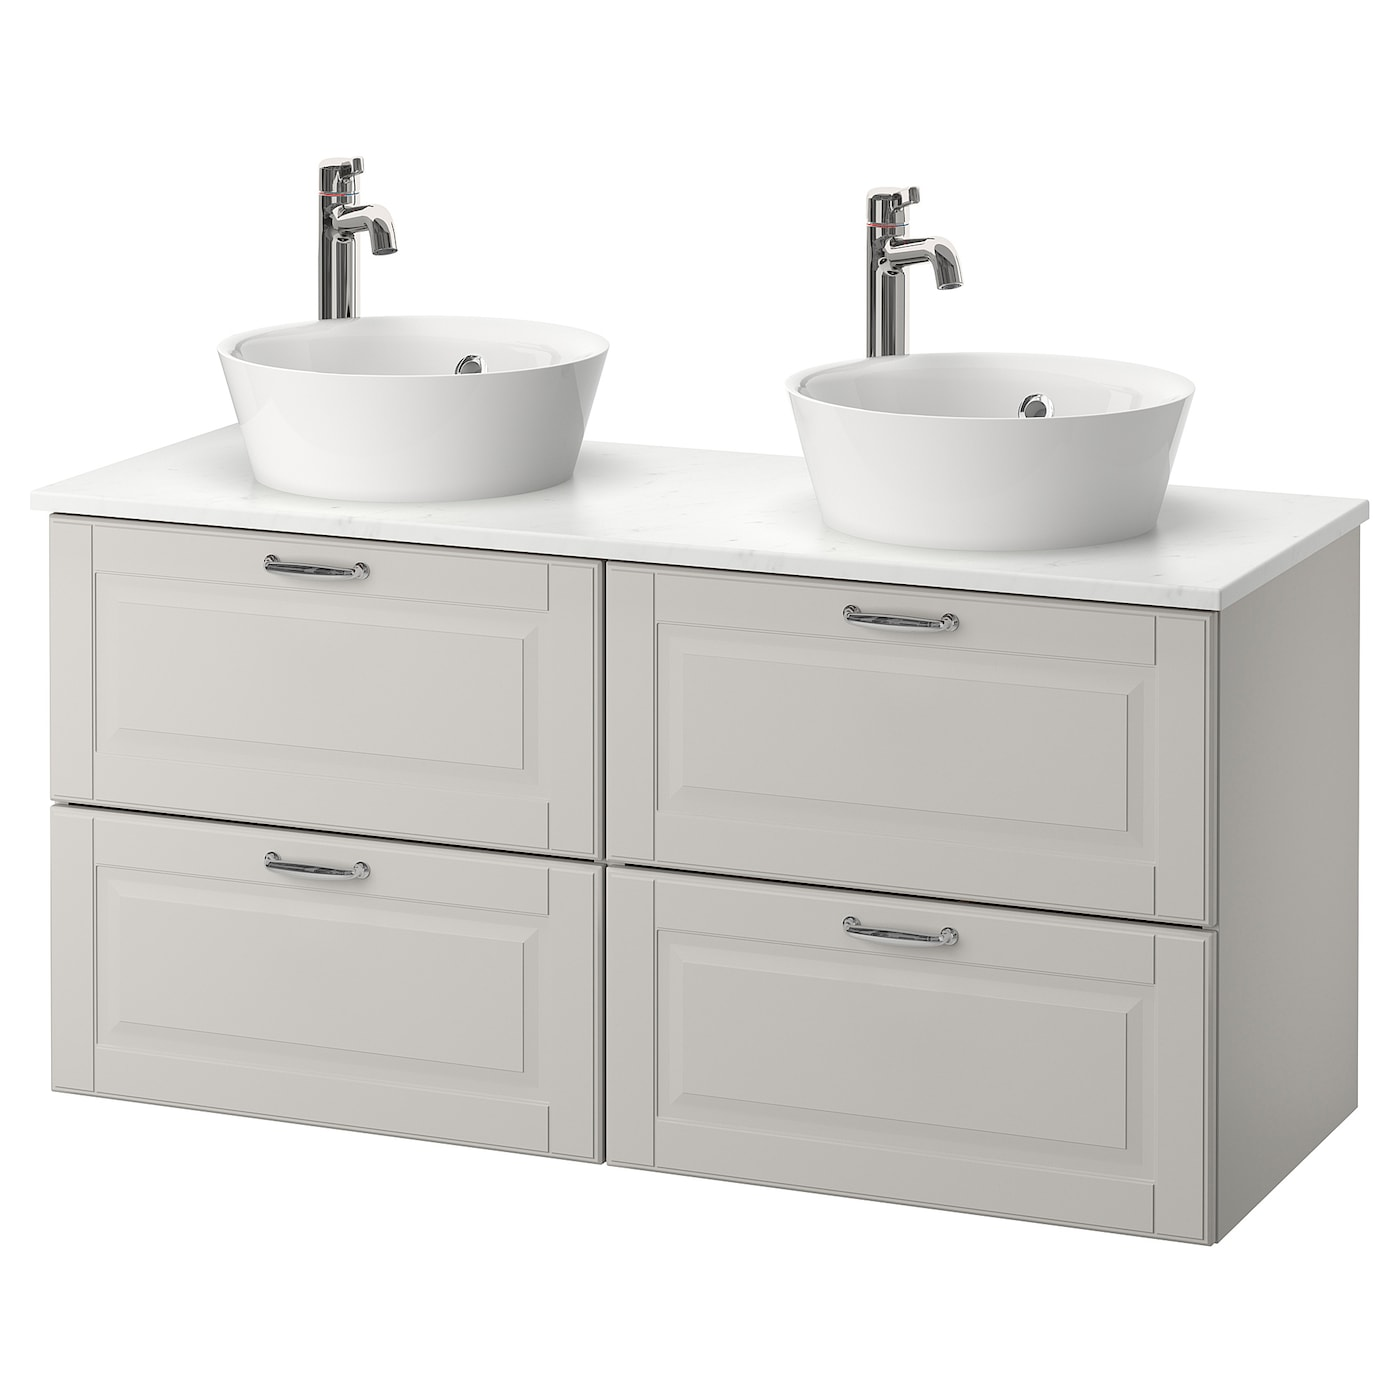 ikea bathroom sinks and cabinets kattevik godmorgon tolken wsh stnd w countertop 40 wash 23514